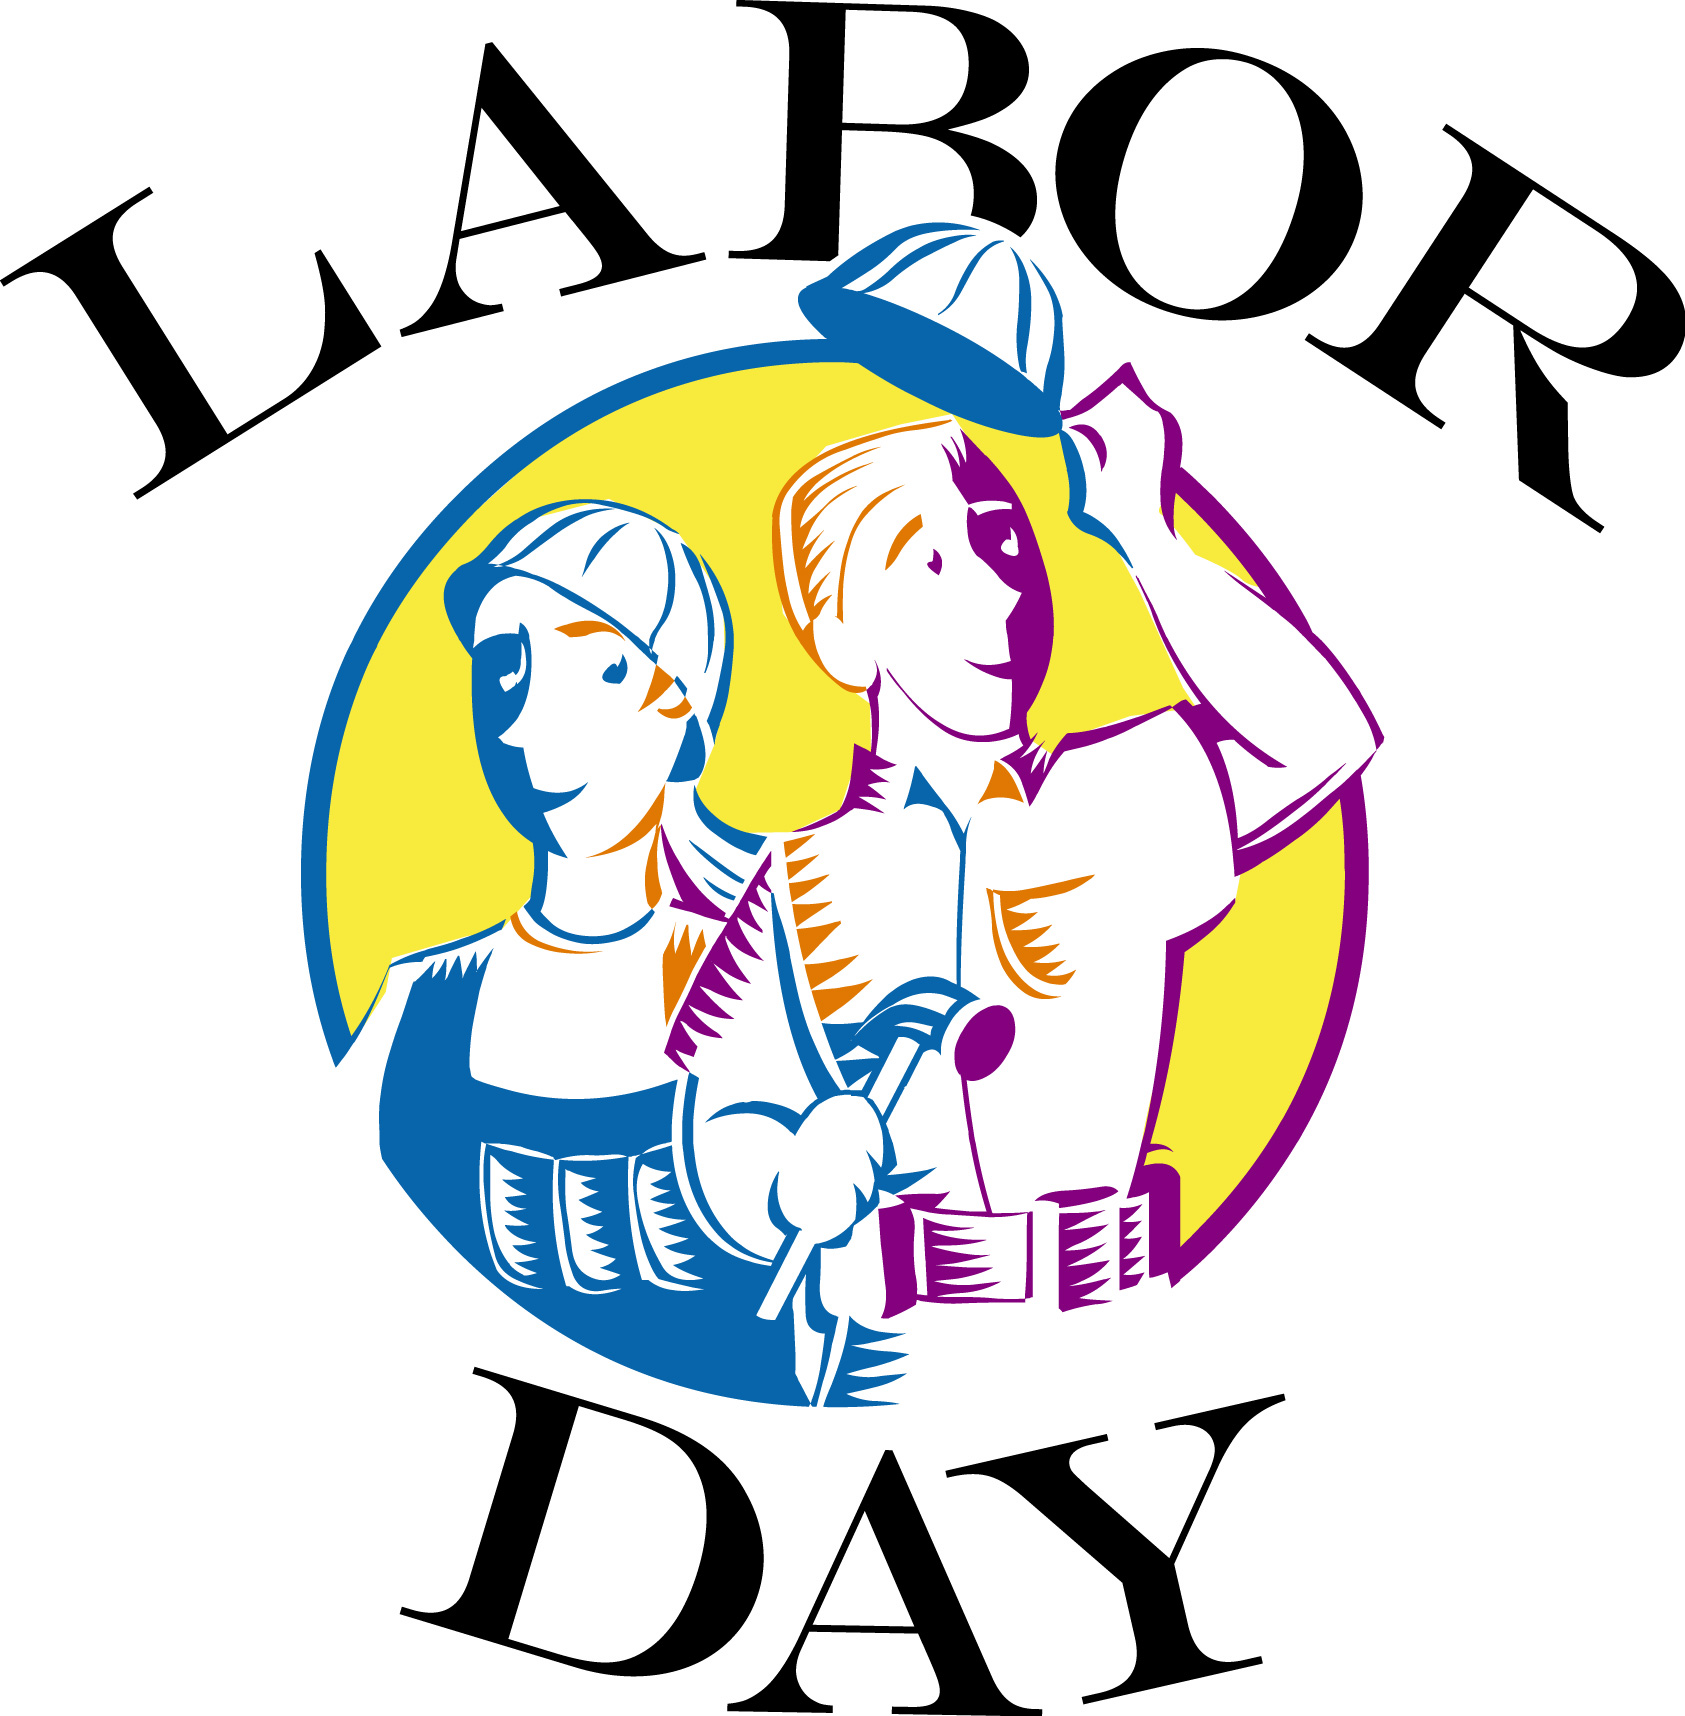 labor day drawing at getdrawings com free for personal use labor rh getdrawings com labor day clip art images labor day clip art borders